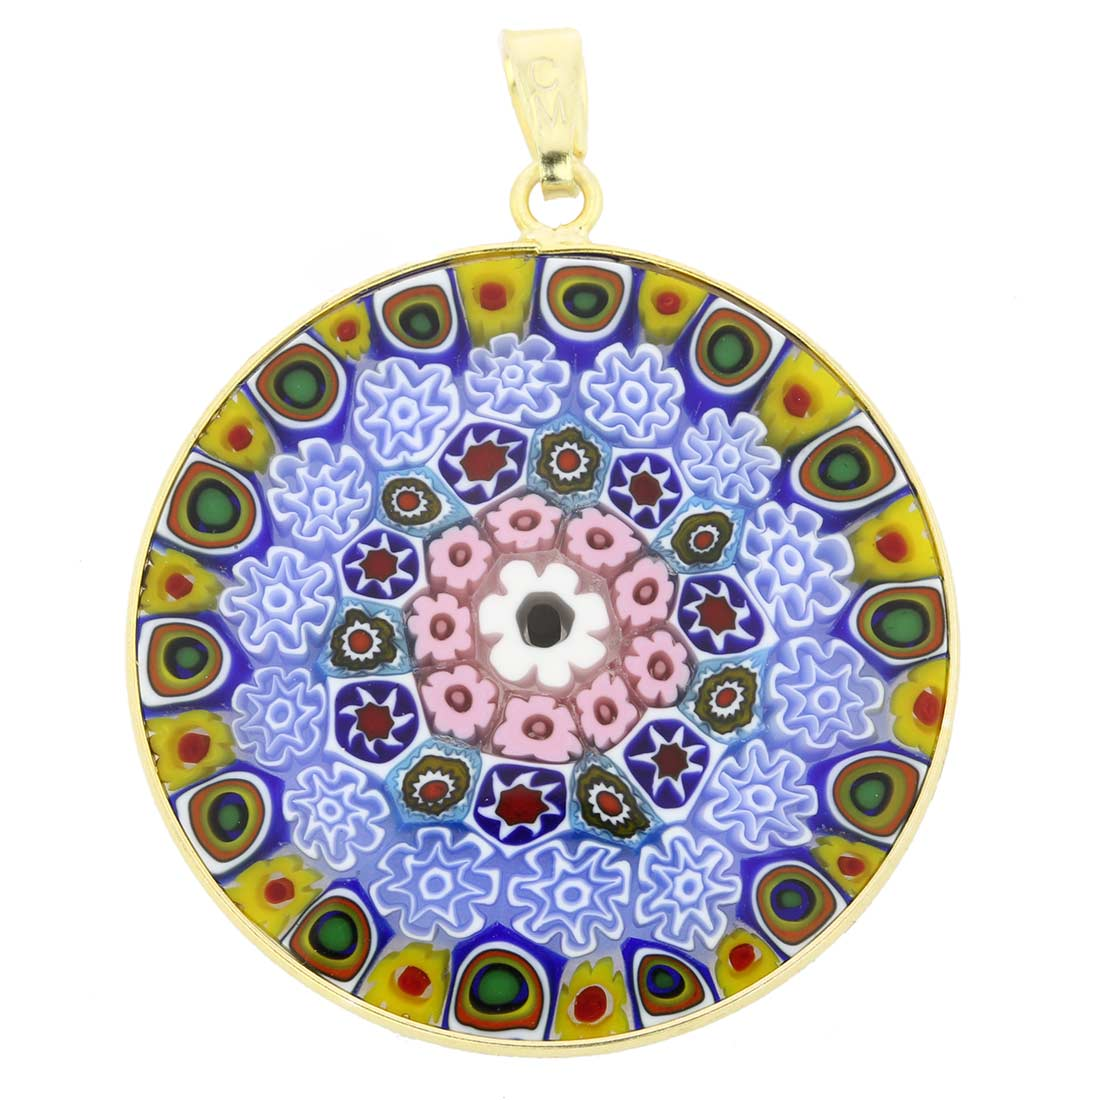 Large Millefiori Pendant in Gold-Plated Frame 32mm